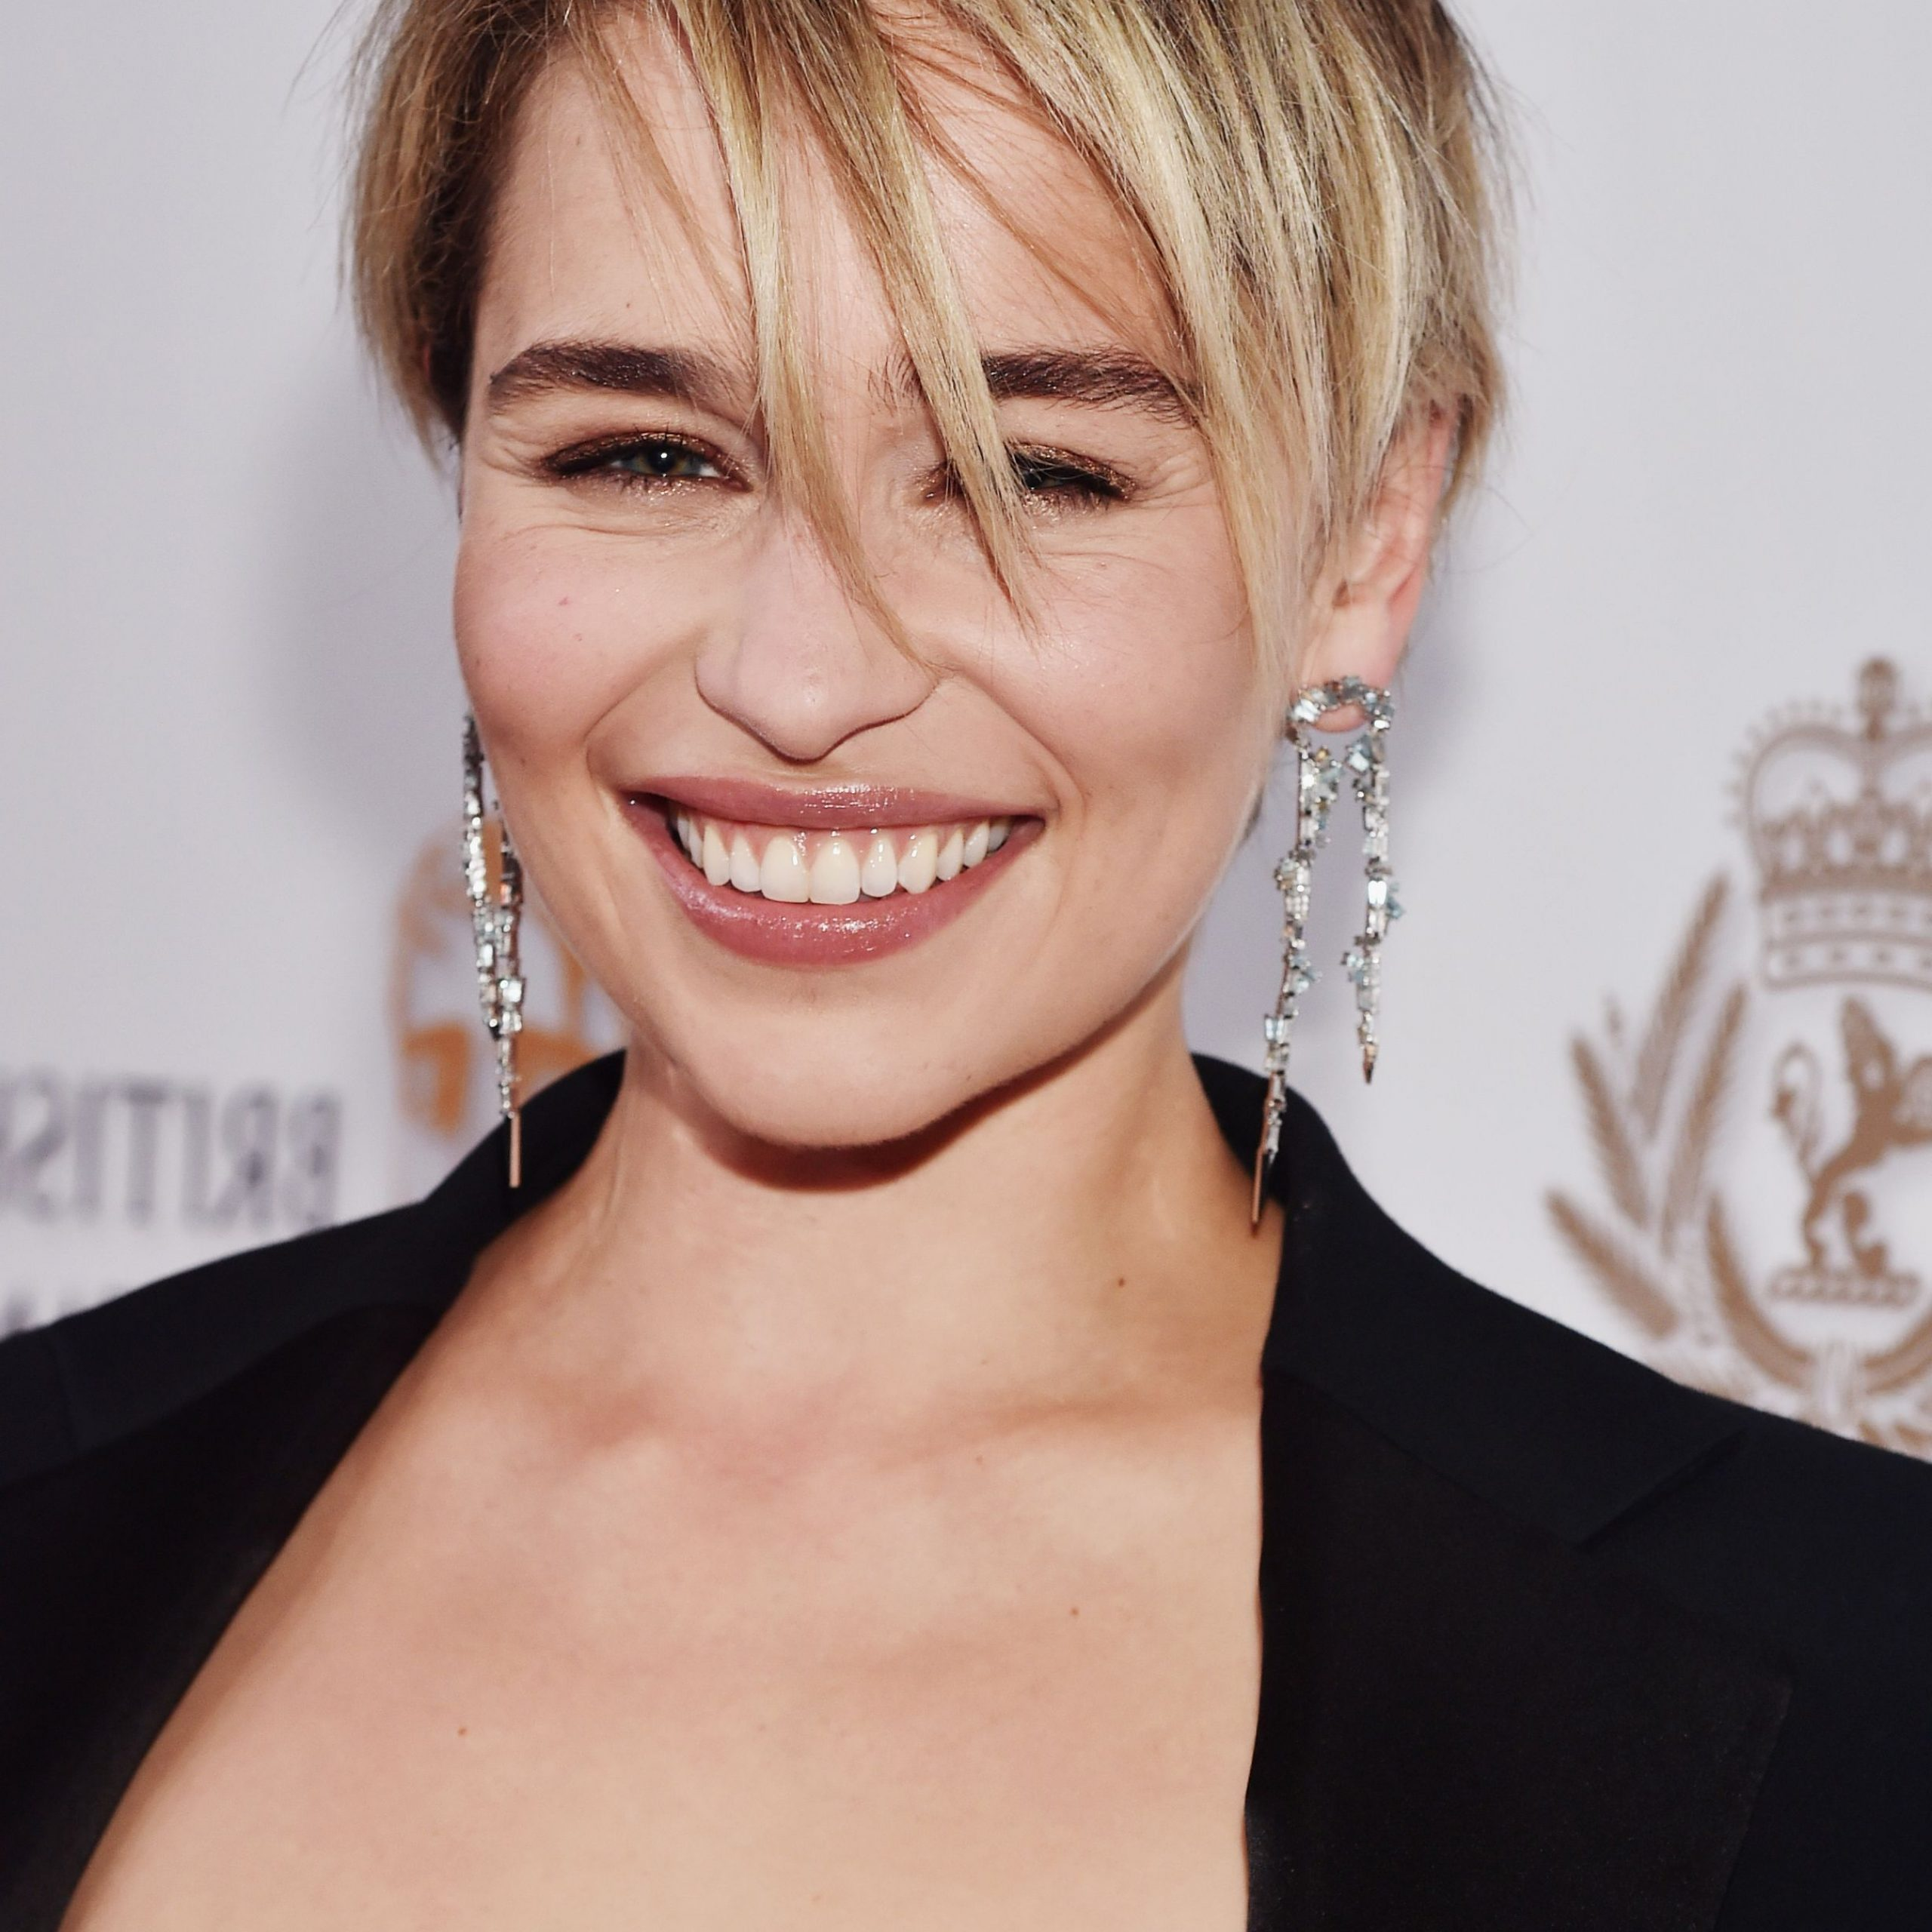 70 Best Pixie Cut Hairstyle Ideas 2019 – Cute Celebrity In Messy Highlighted Pixie Haircuts With Long Side Bangs (View 13 of 20)